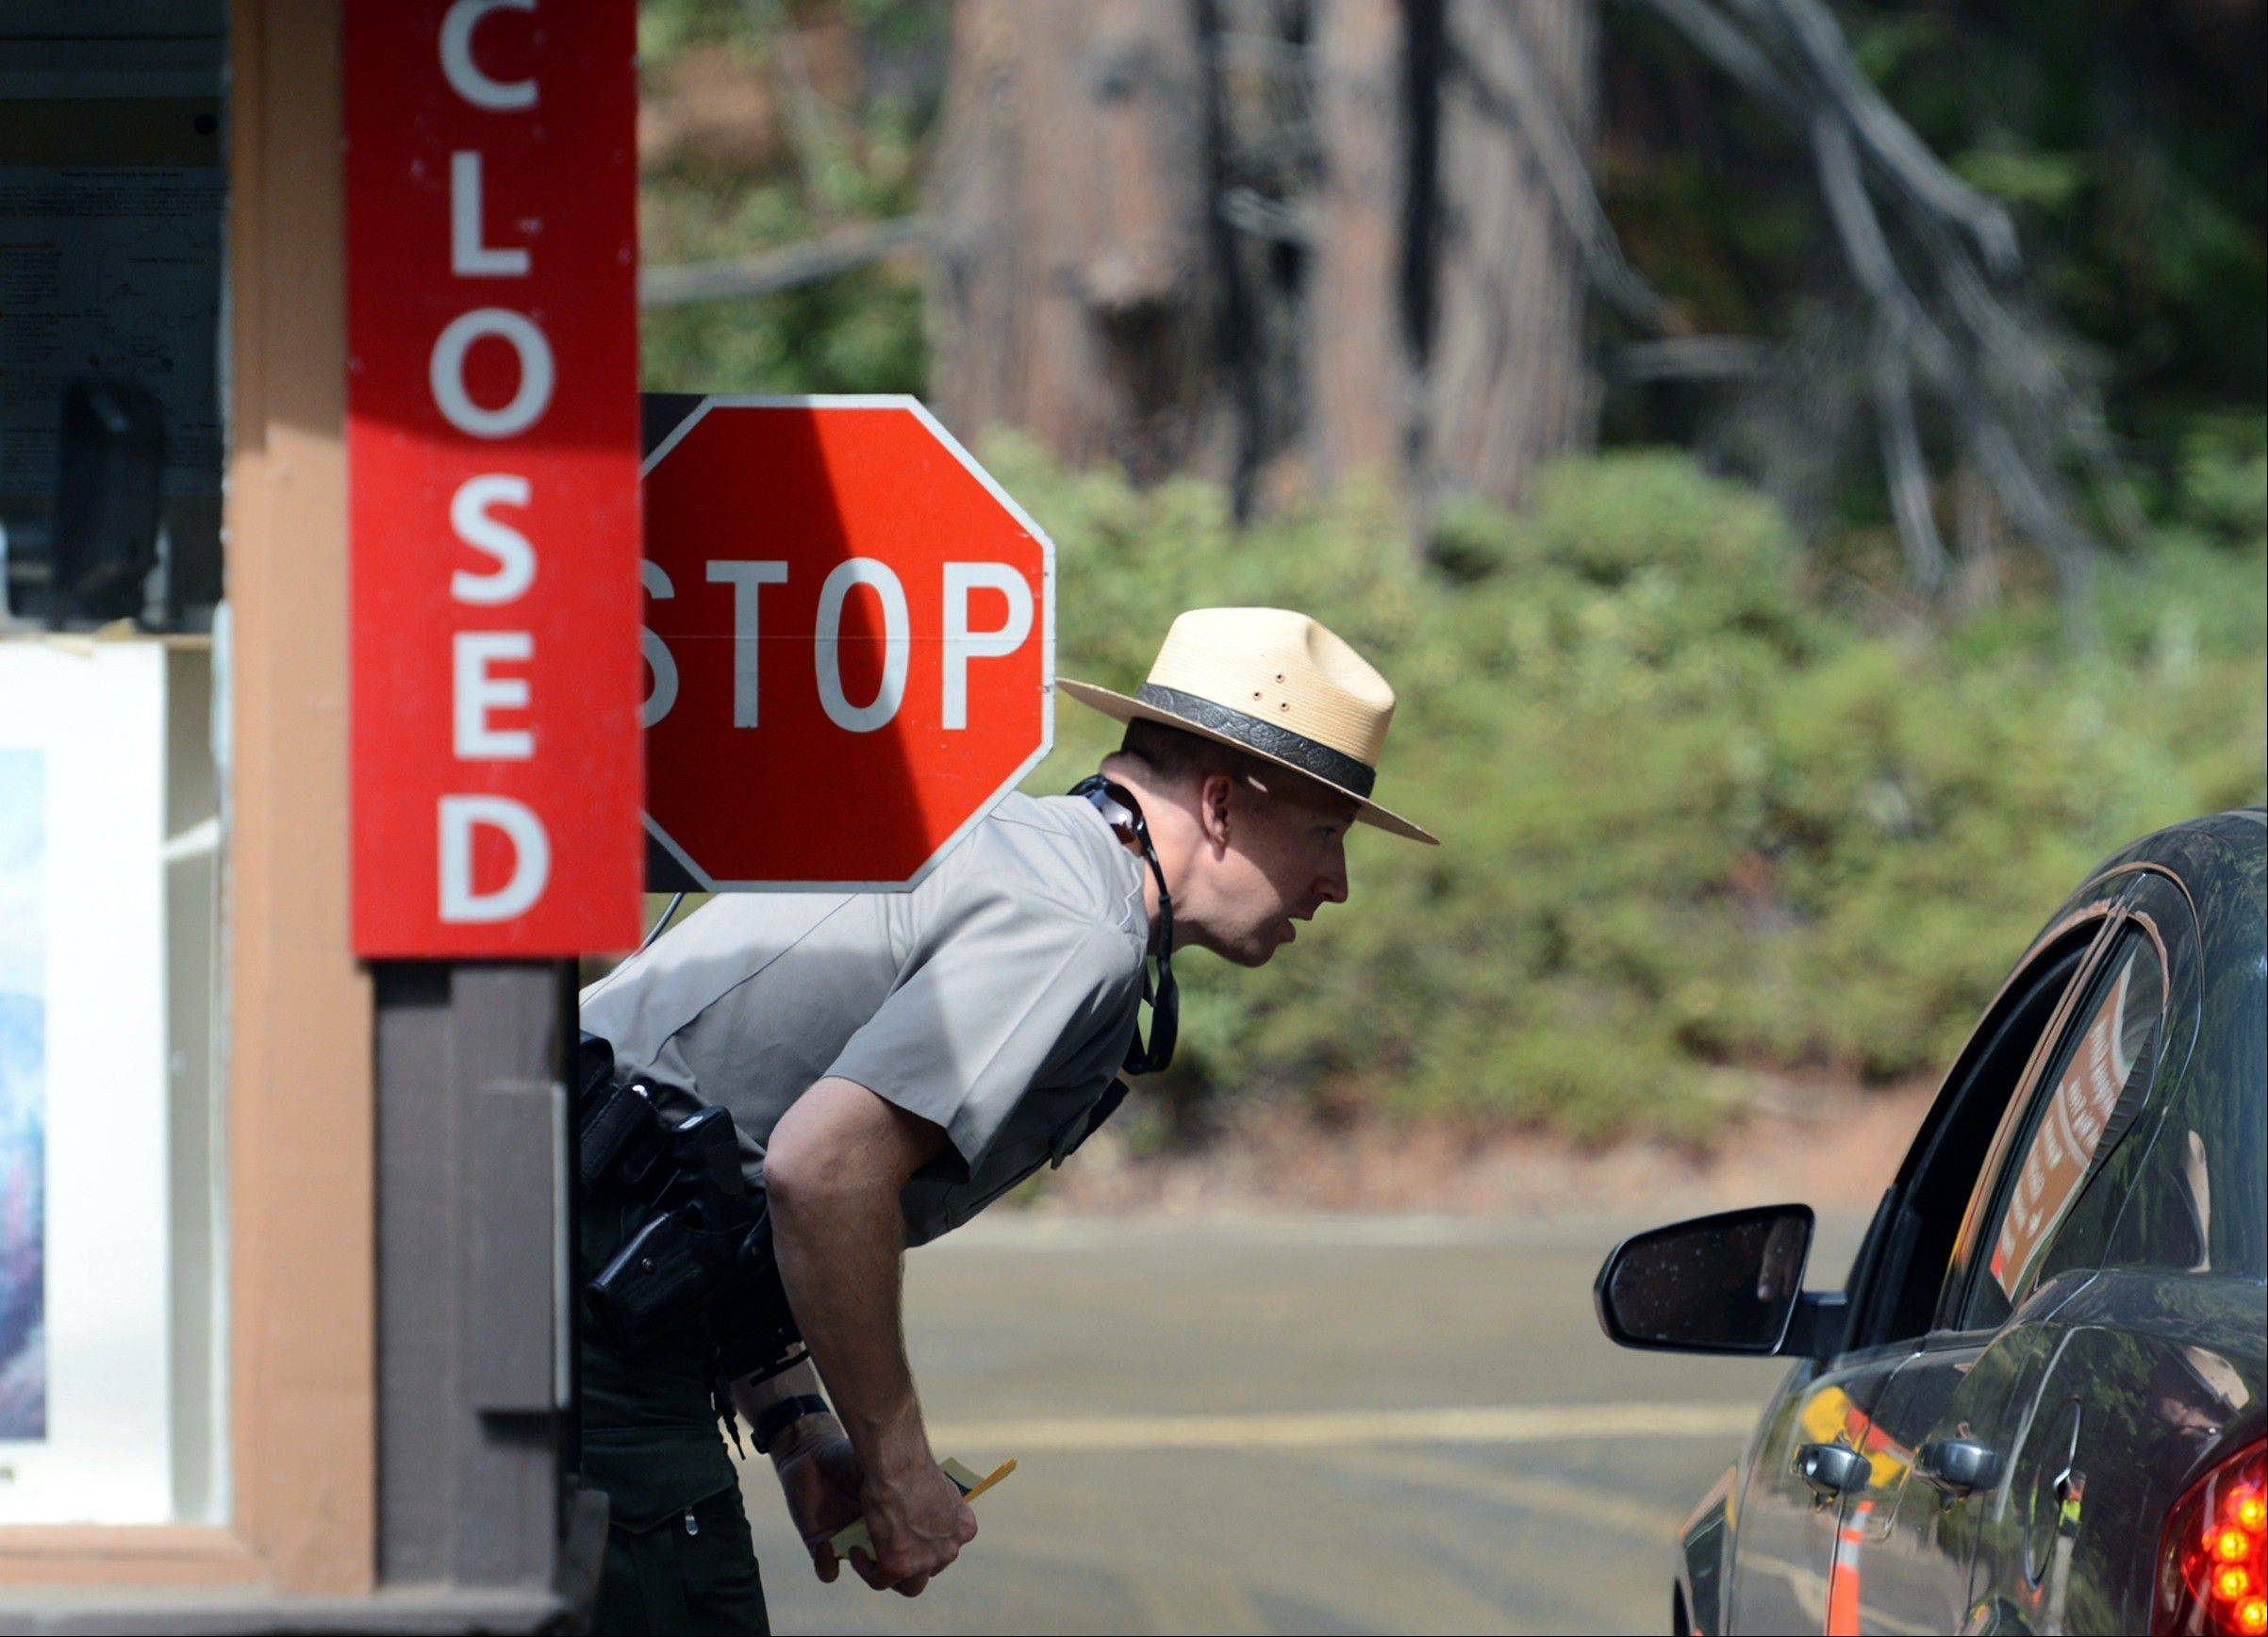 U.S. park ranger Jeff Gardner informs visitors of the closure of Yosemite National Park, Calif., of the closure of the park due to the government shutdown.